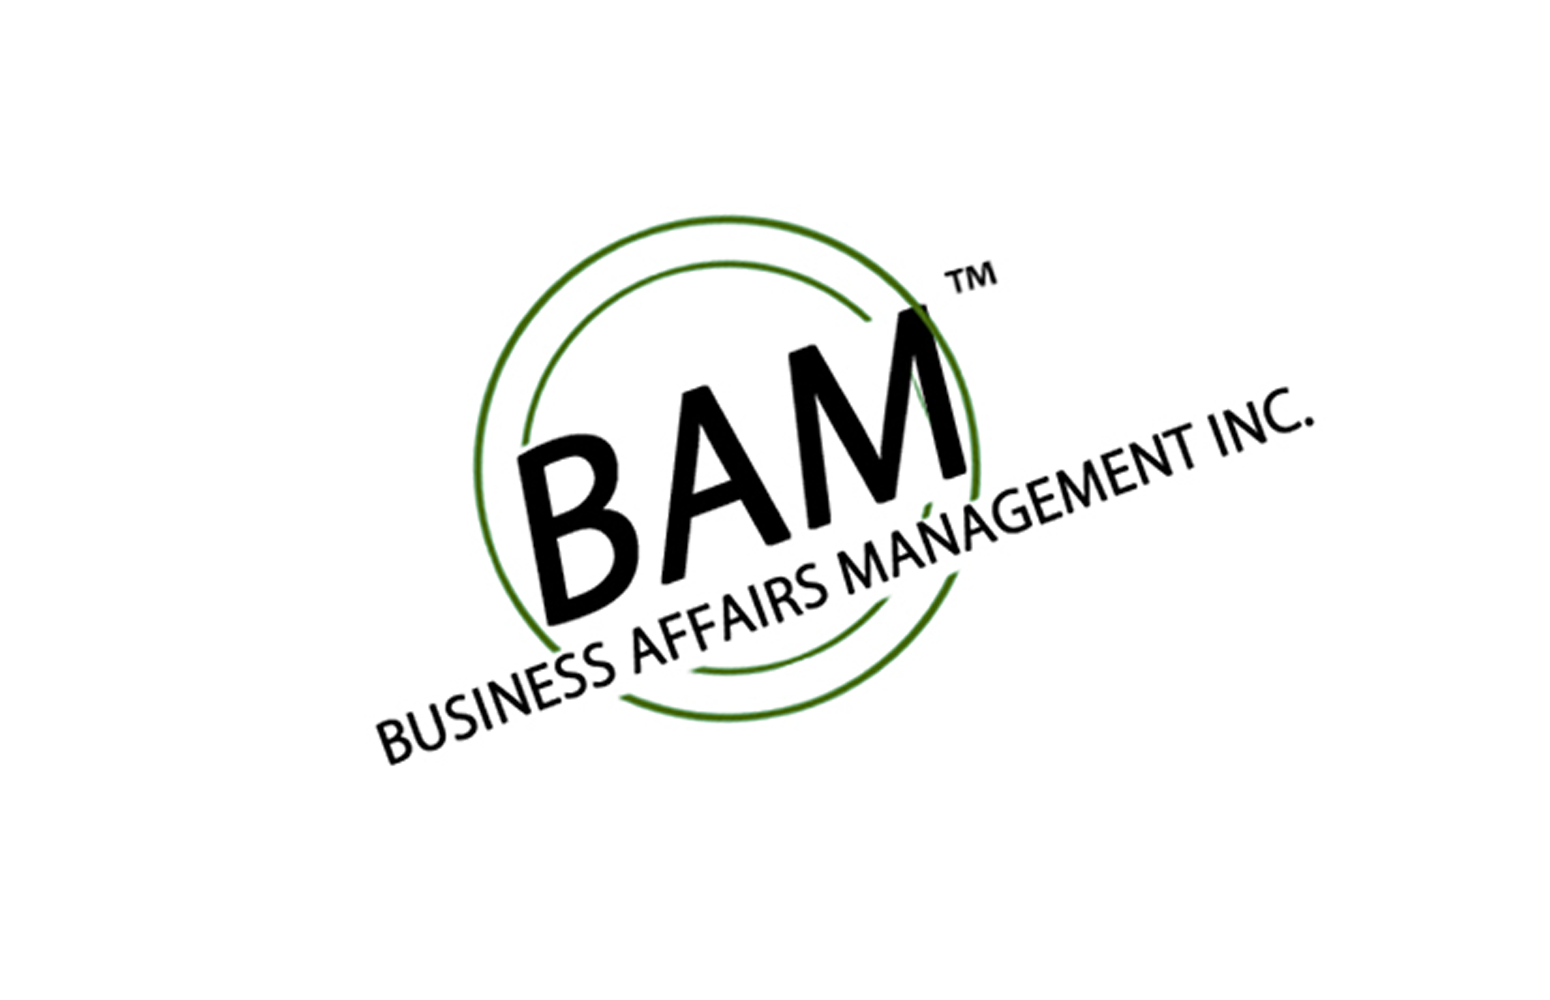 Business Affairs Management